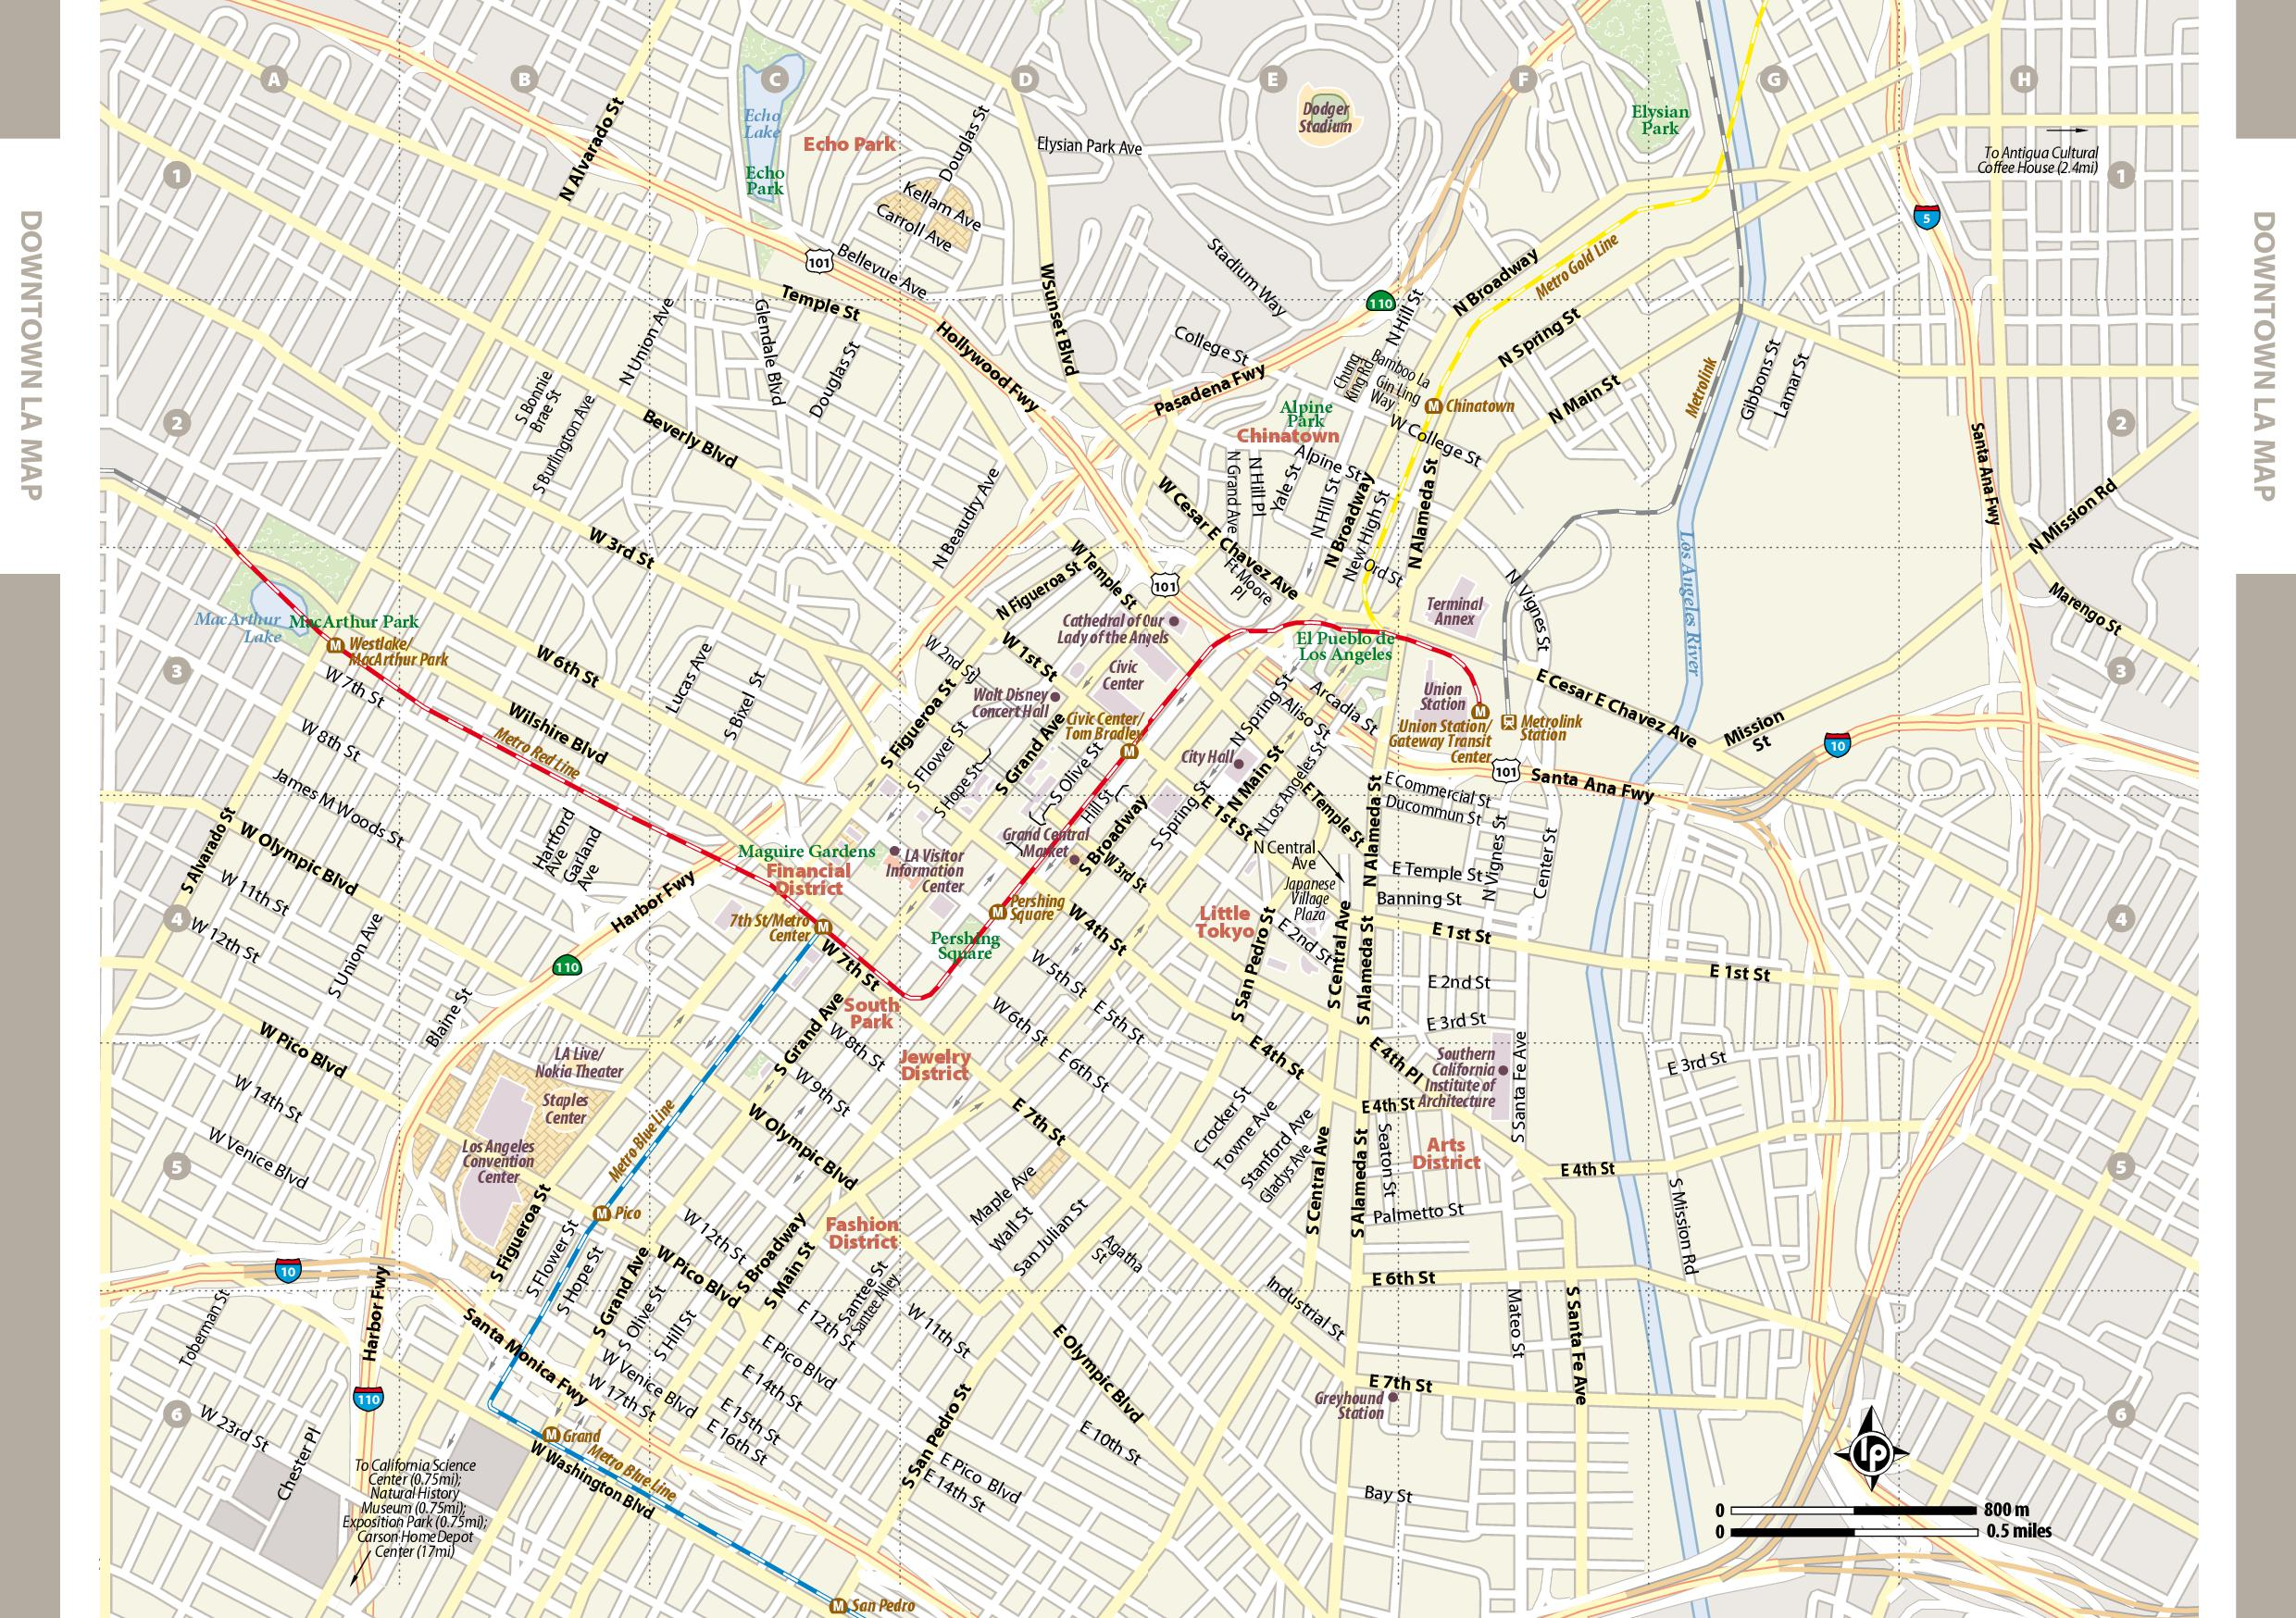 Map Of Los Angeles County Zip Codes, Detailed Map Of Los Angeles 4, Map Of Los Angeles County Zip Codes